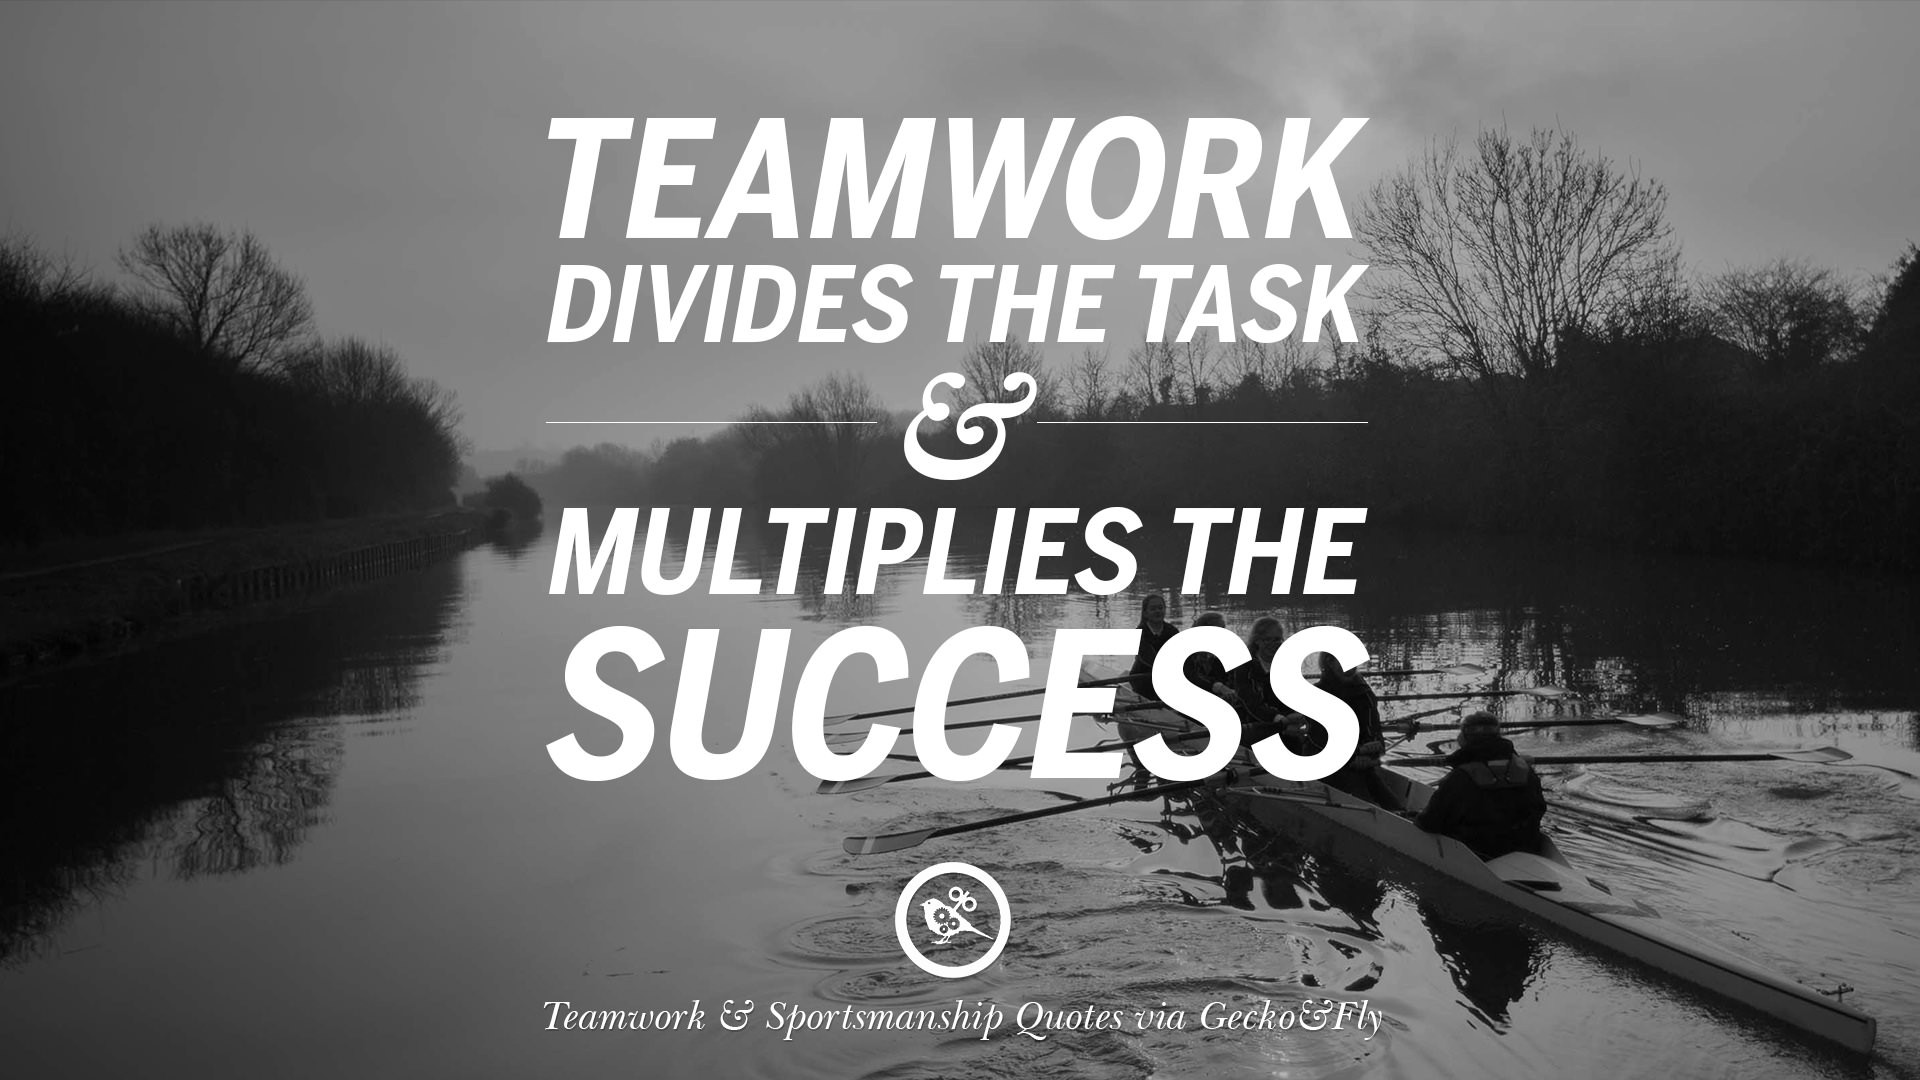 Motivational Quotes For Teams  50 Inspirational Quotes About Teamwork And Sportsmanship